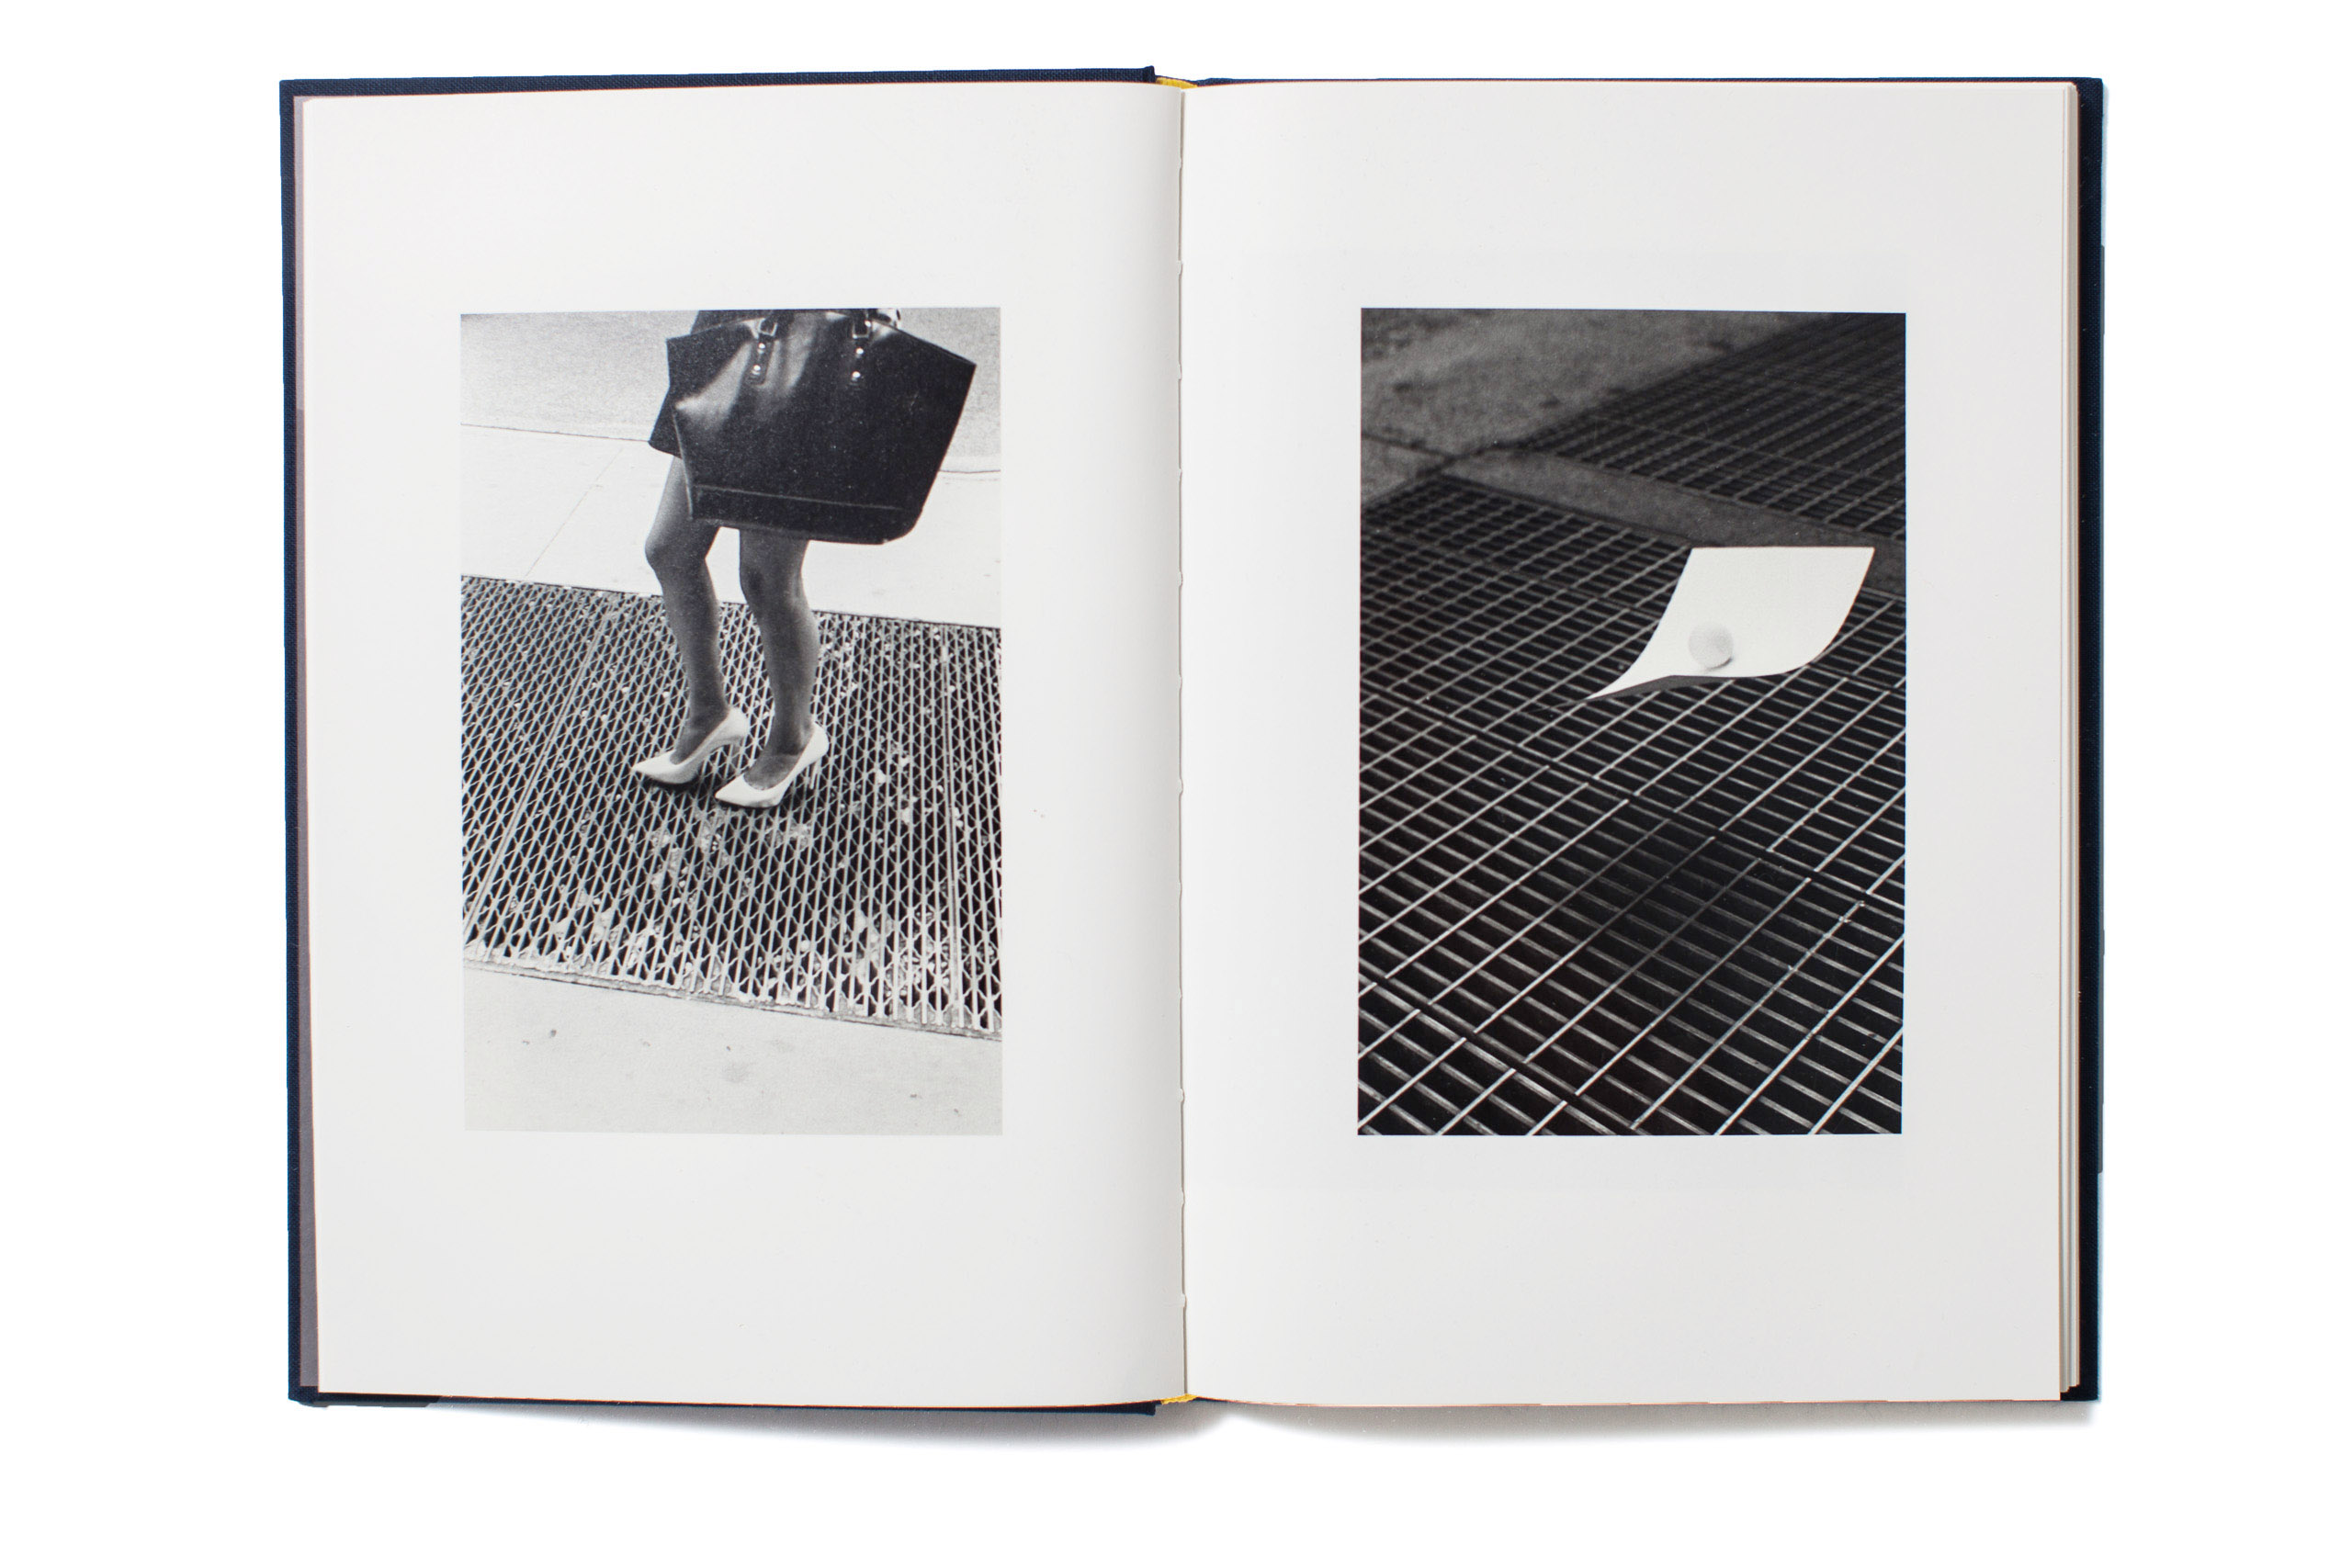 """""""In his new book, <i>III</i>, Robin Maddock employs a simple device to turn otherwise pretty but unremarkable photographs into open metaphors that I want to look at and think about for a long time. I won't tell you what the device is, but will say that it was used at the time of shooting, and appears to have been honed to perfection. It's a gimmick that ends up not feeling gimmicky. The book is whimsical, funny, mysterious and thought-provoking.""""                                                                       -Jason Fulford, photographer and Publisher of J&amp;L Books"""